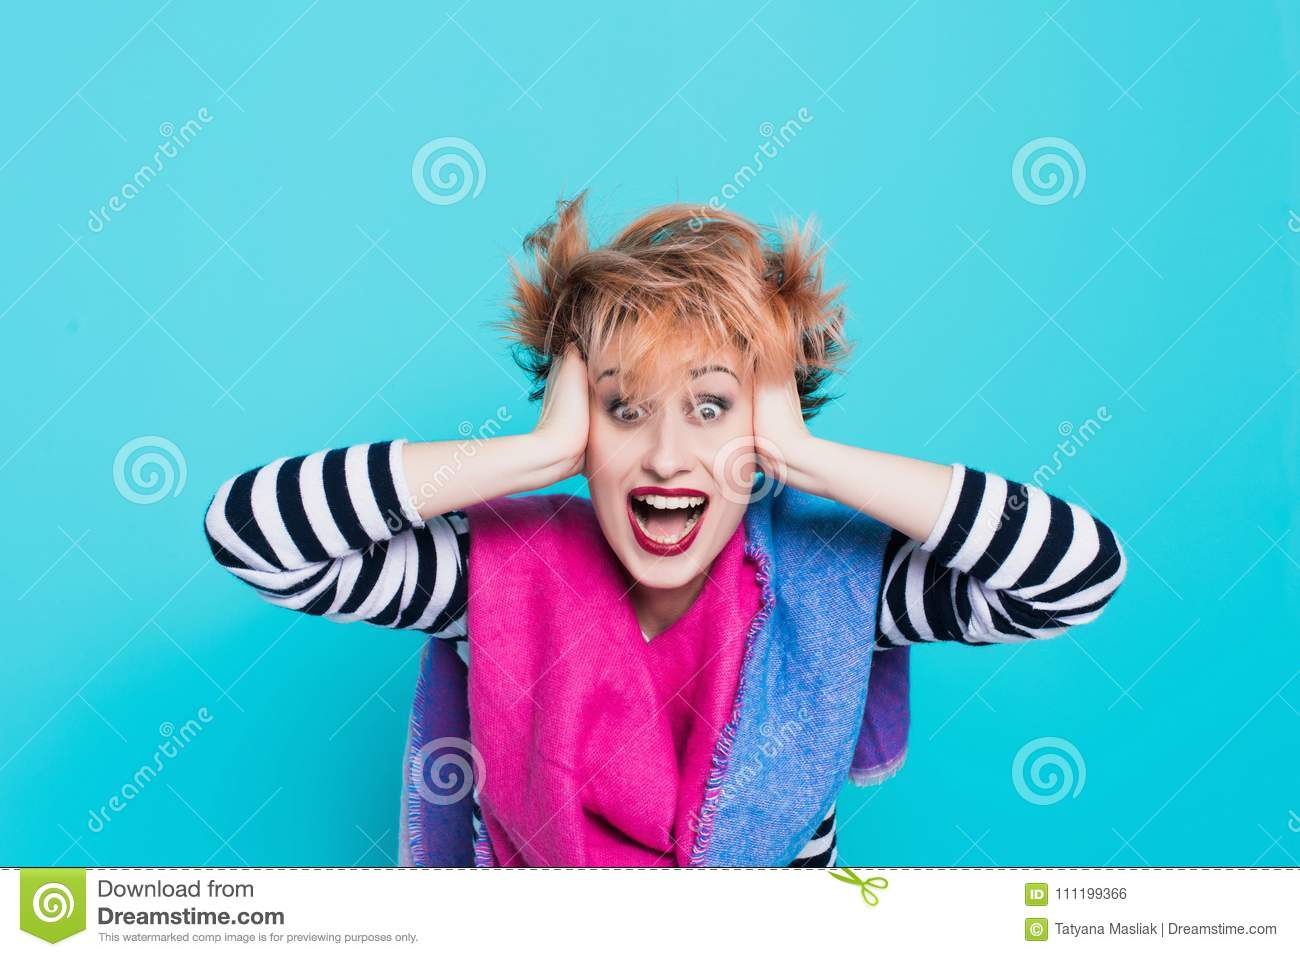 Girl with red hair holding her head shouting. Stress and hysterical. negative emotions. Studio shot.